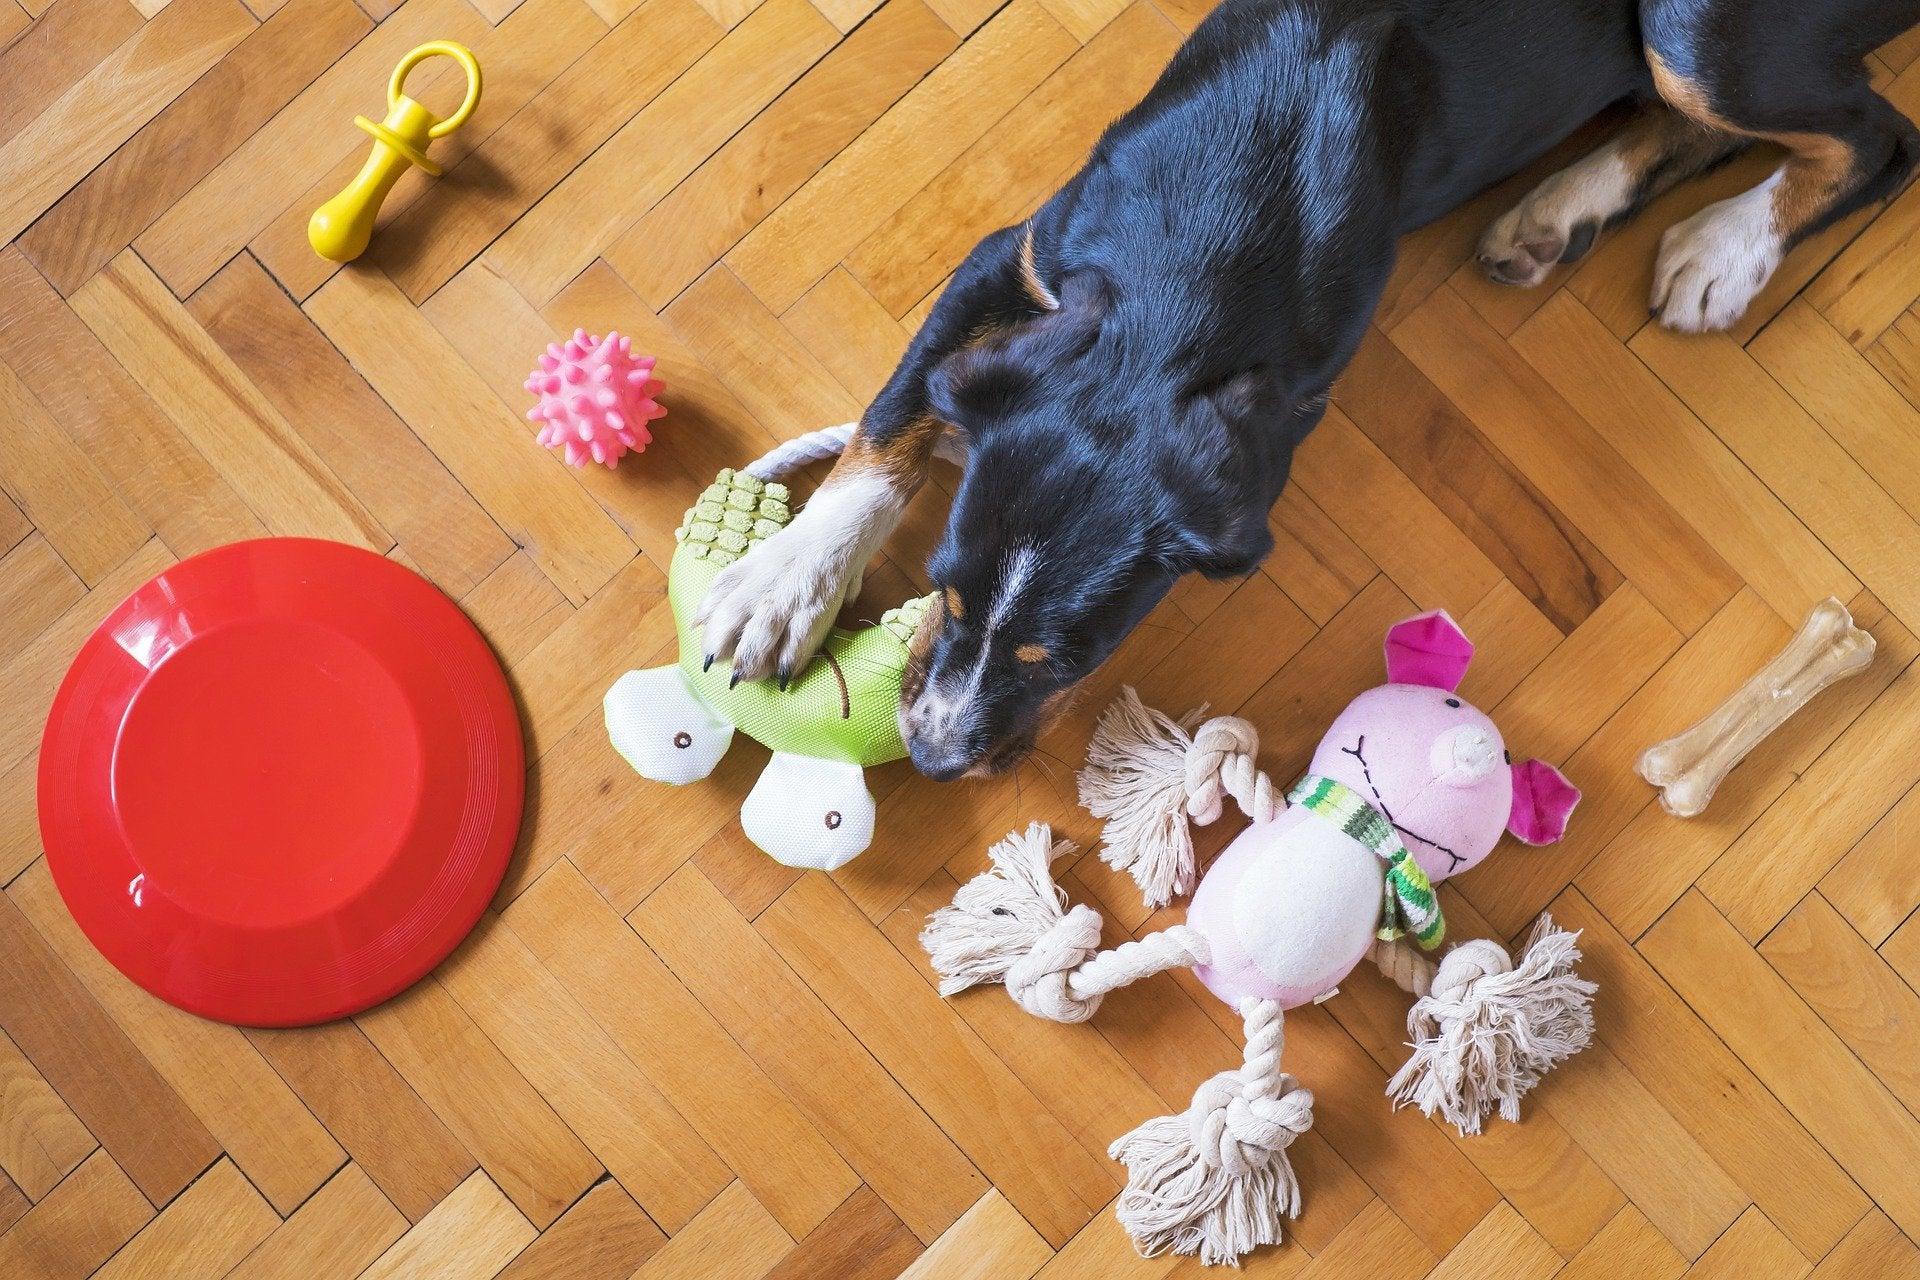 black and brown dog surrounded by toys on the floor